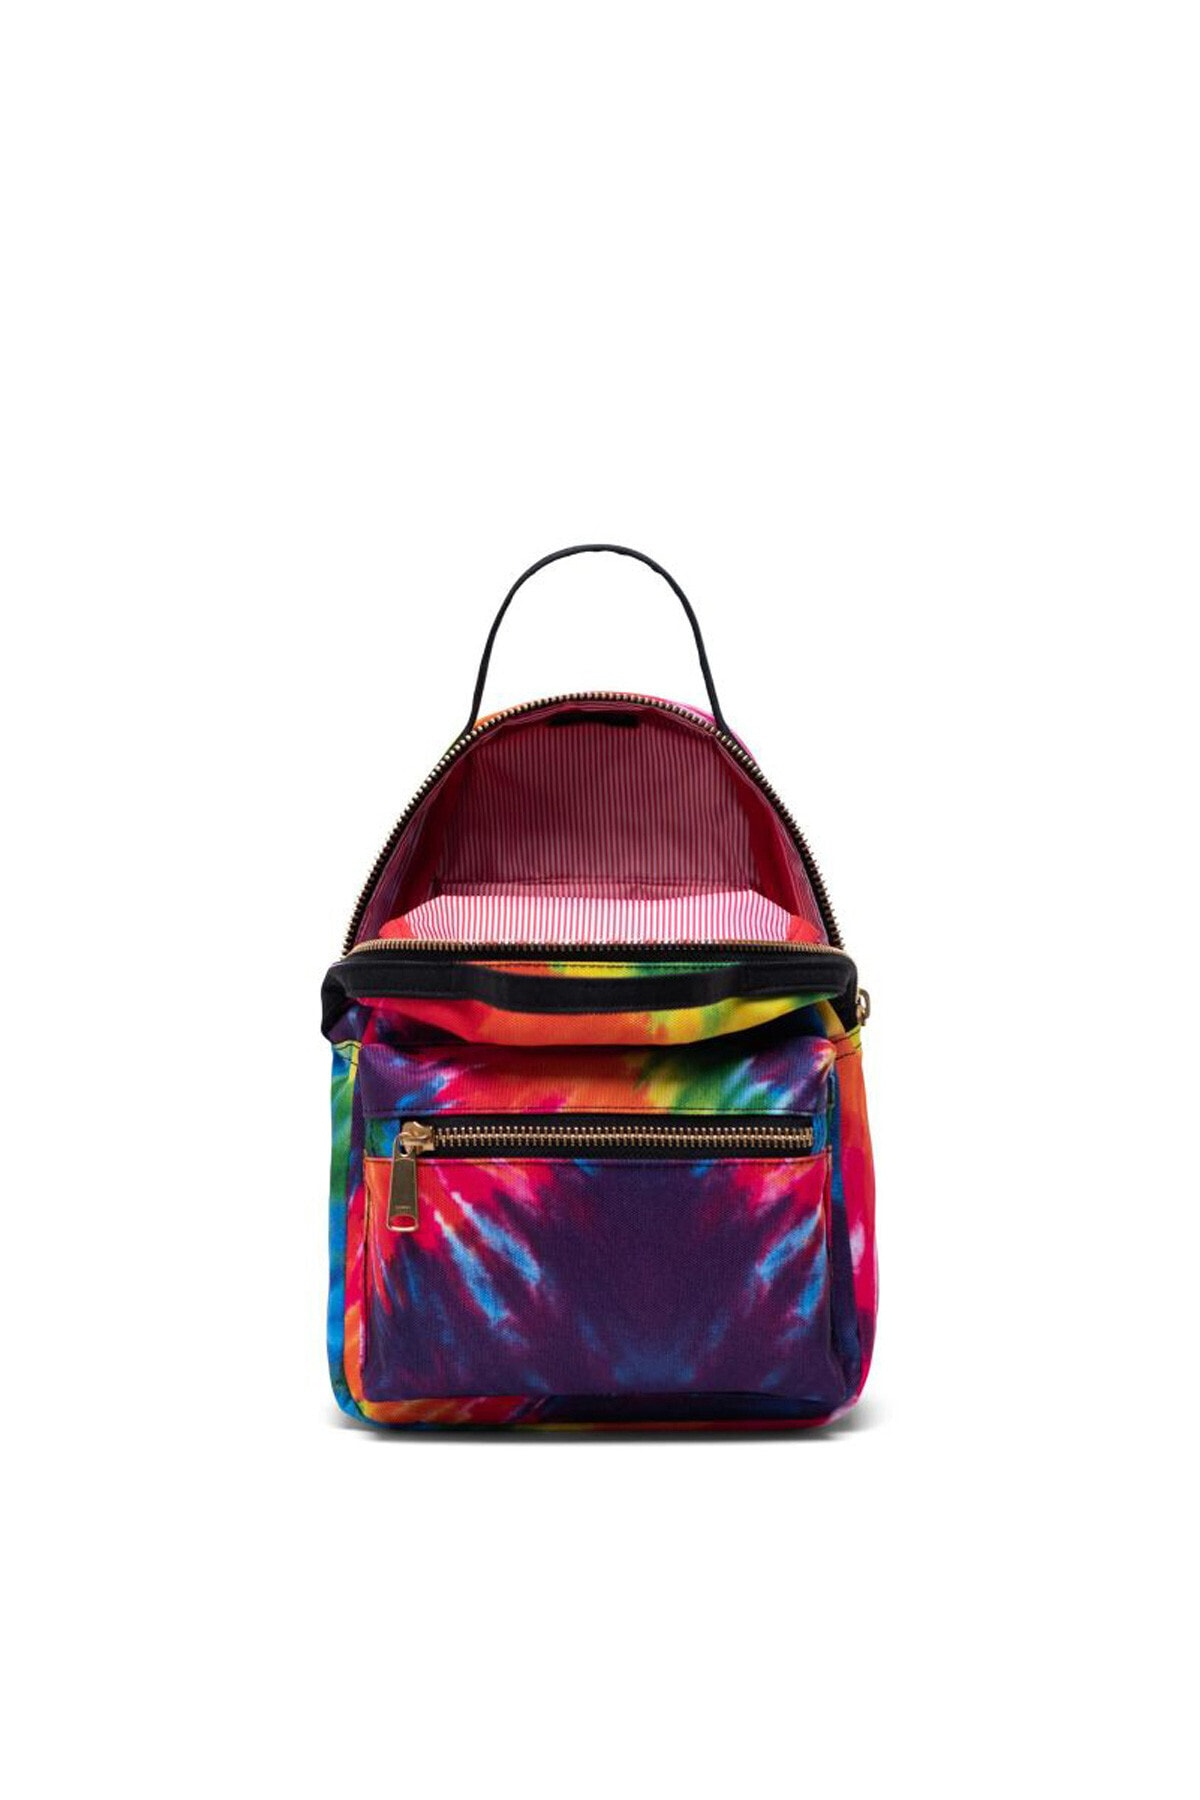 Herschel Supply Co. Herschel Nova Mini Rainbow Tie Dye Sırt Çantası 10501-03561-os 2